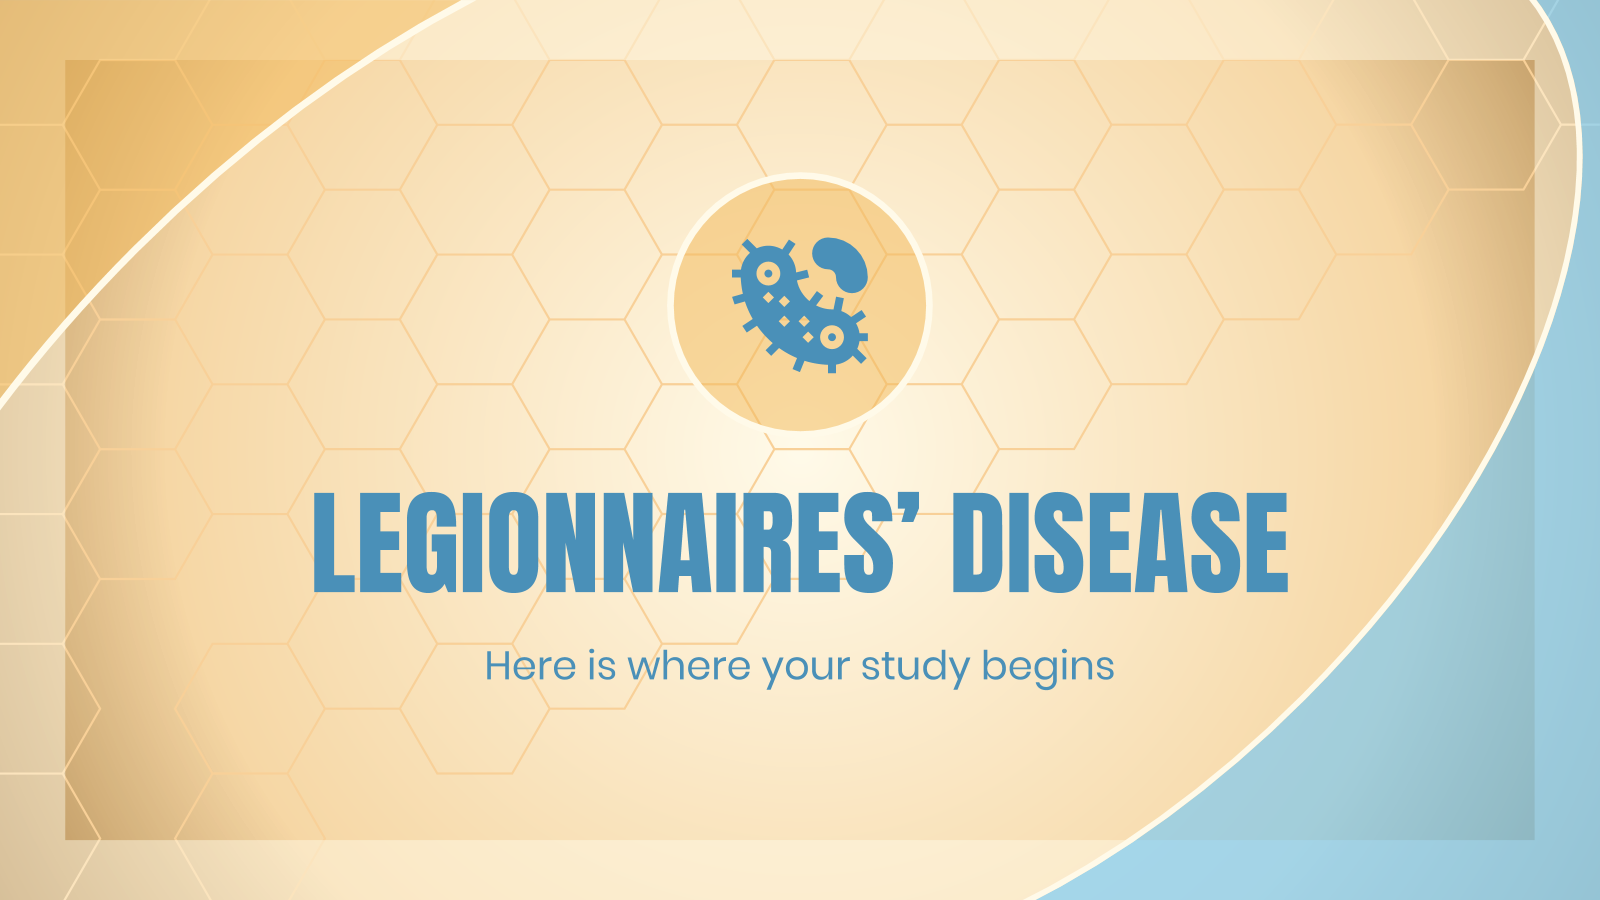 Legionnaires' Disease presentation template